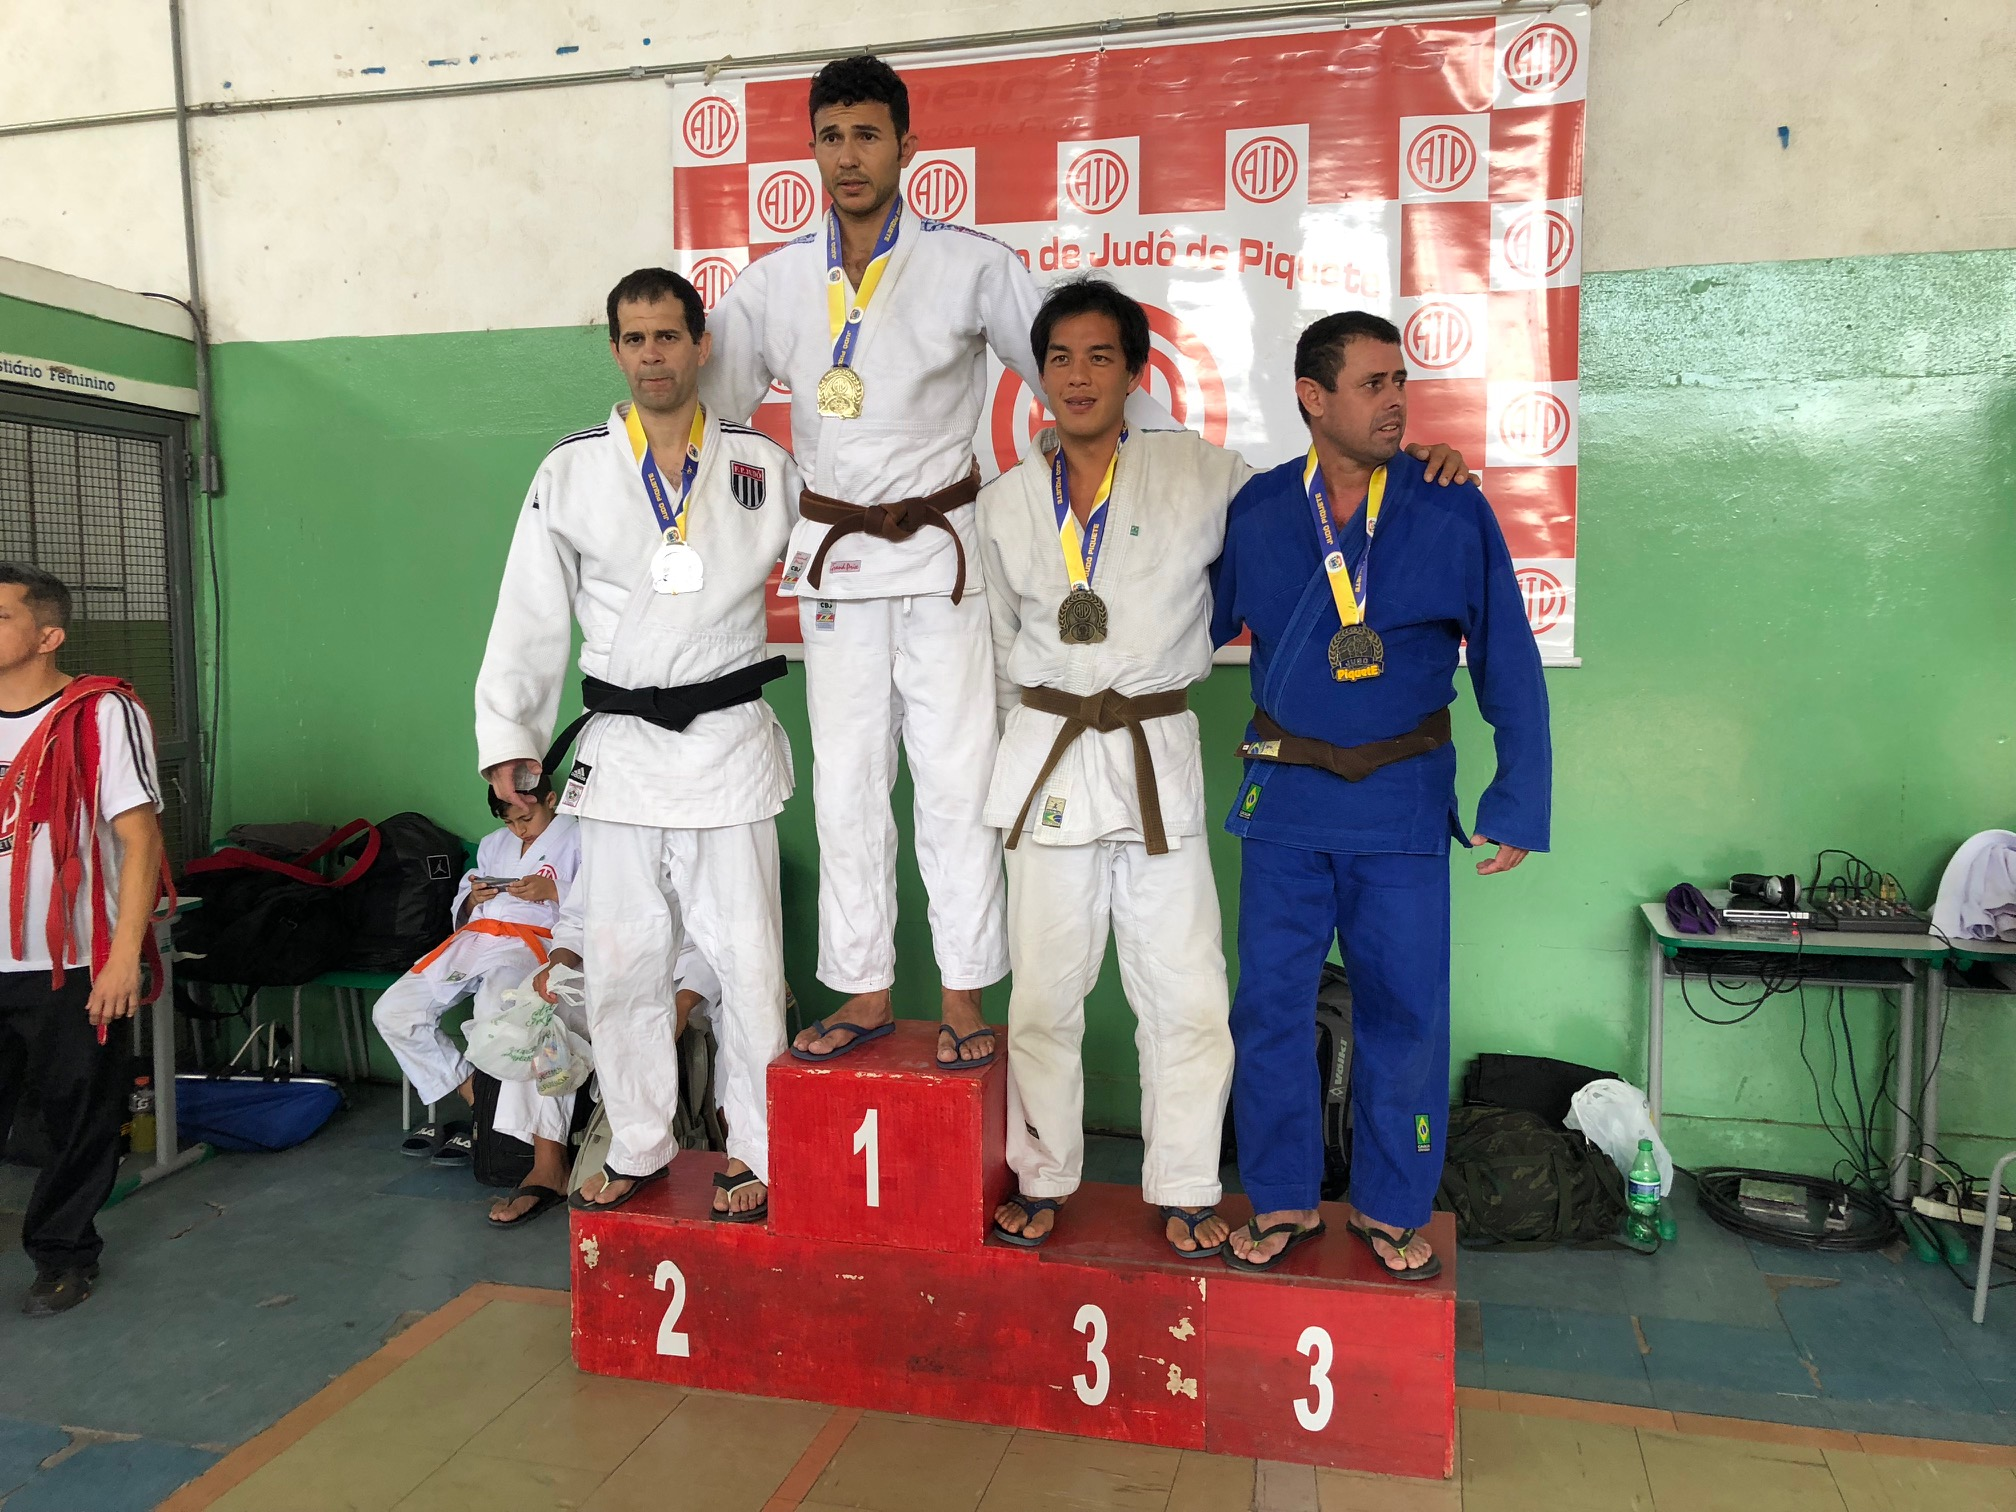 Judô atleta Fillipo